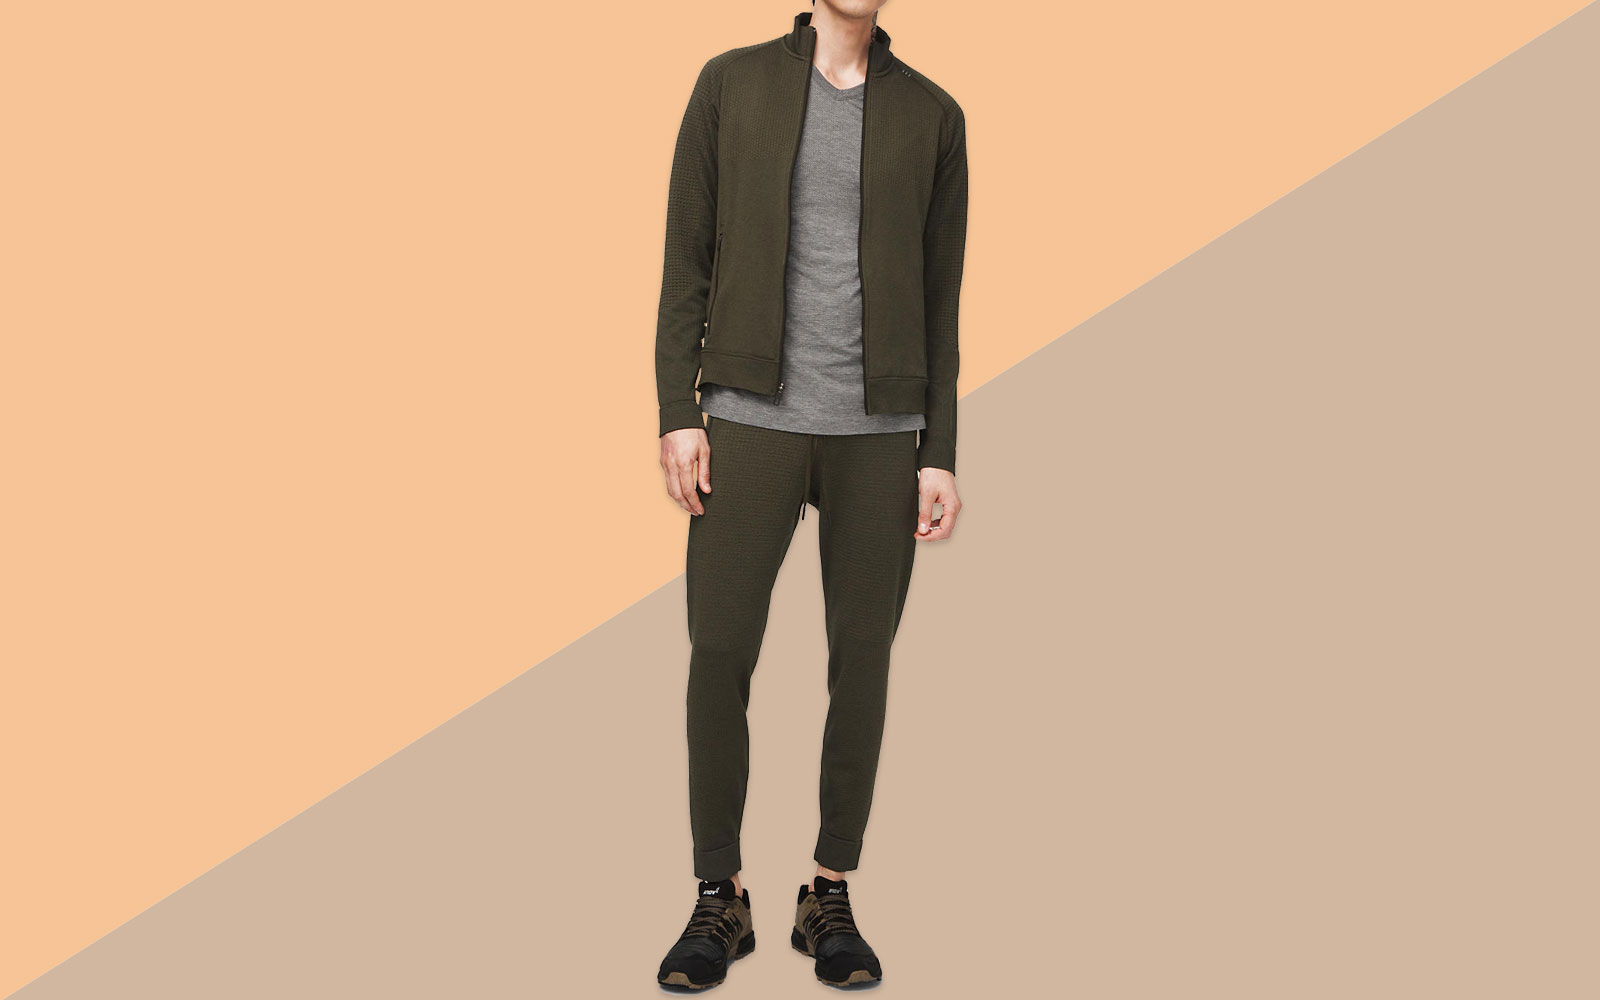 Men's Dark Green Merino Wool Jacket and Jogger Sweatpants on Model